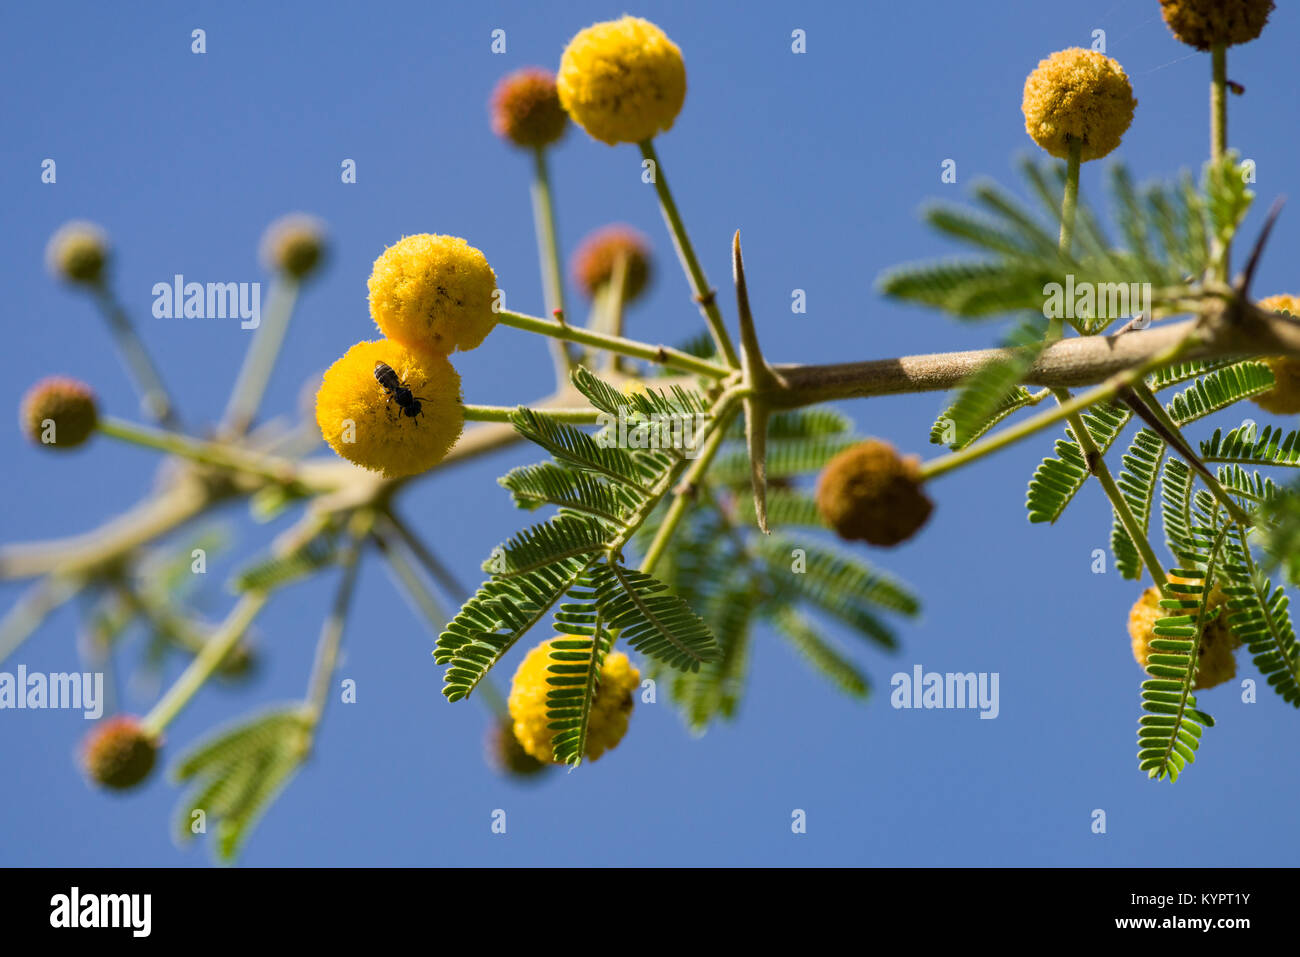 Gum Arabic Tree Stock Photos Gum Arabic Tree Stock Images Alamy